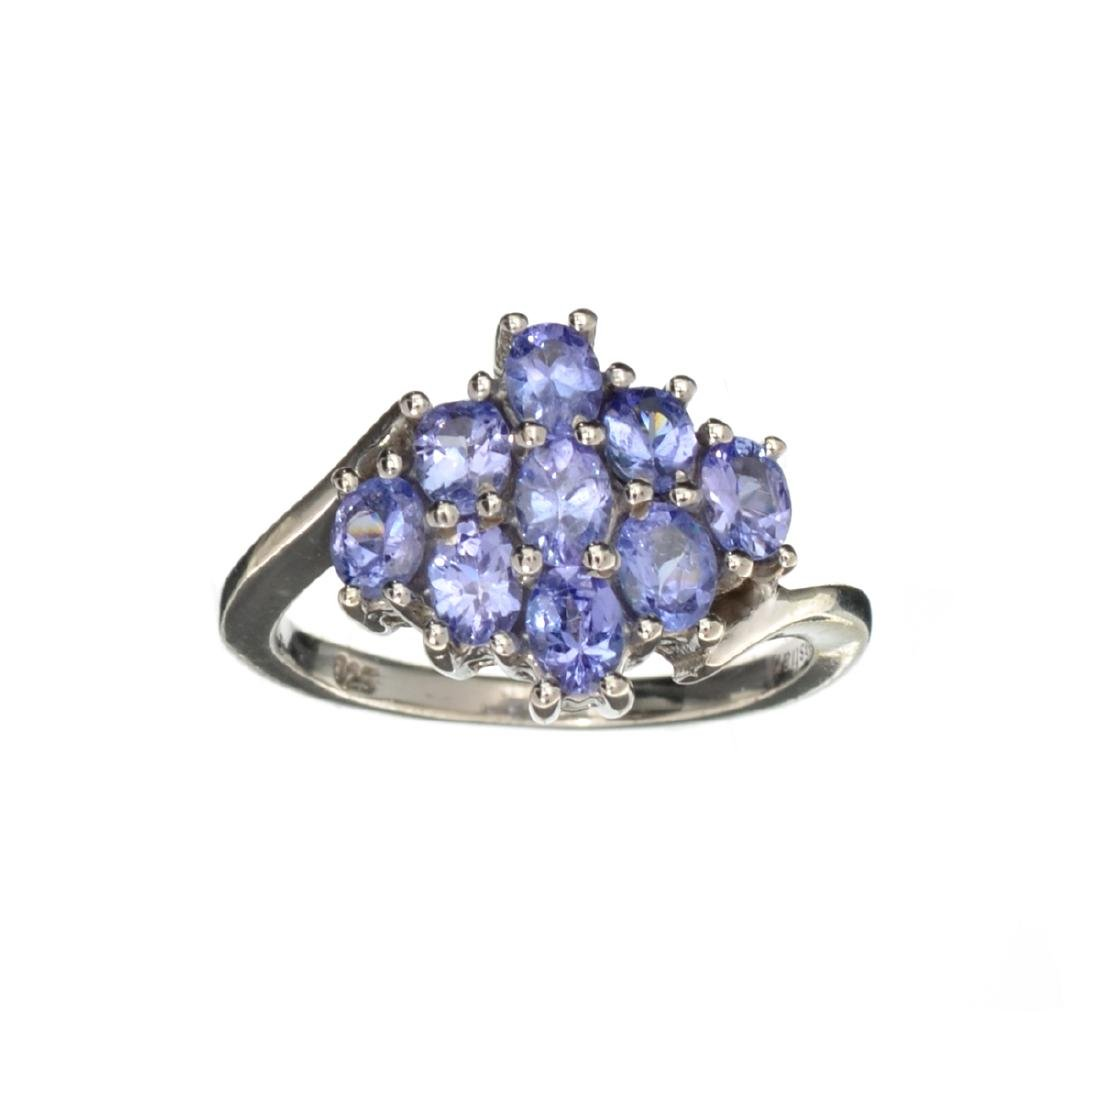 APP: 1.4k Fine Jewelry 1.50CT Oval Cut Tanzanite And